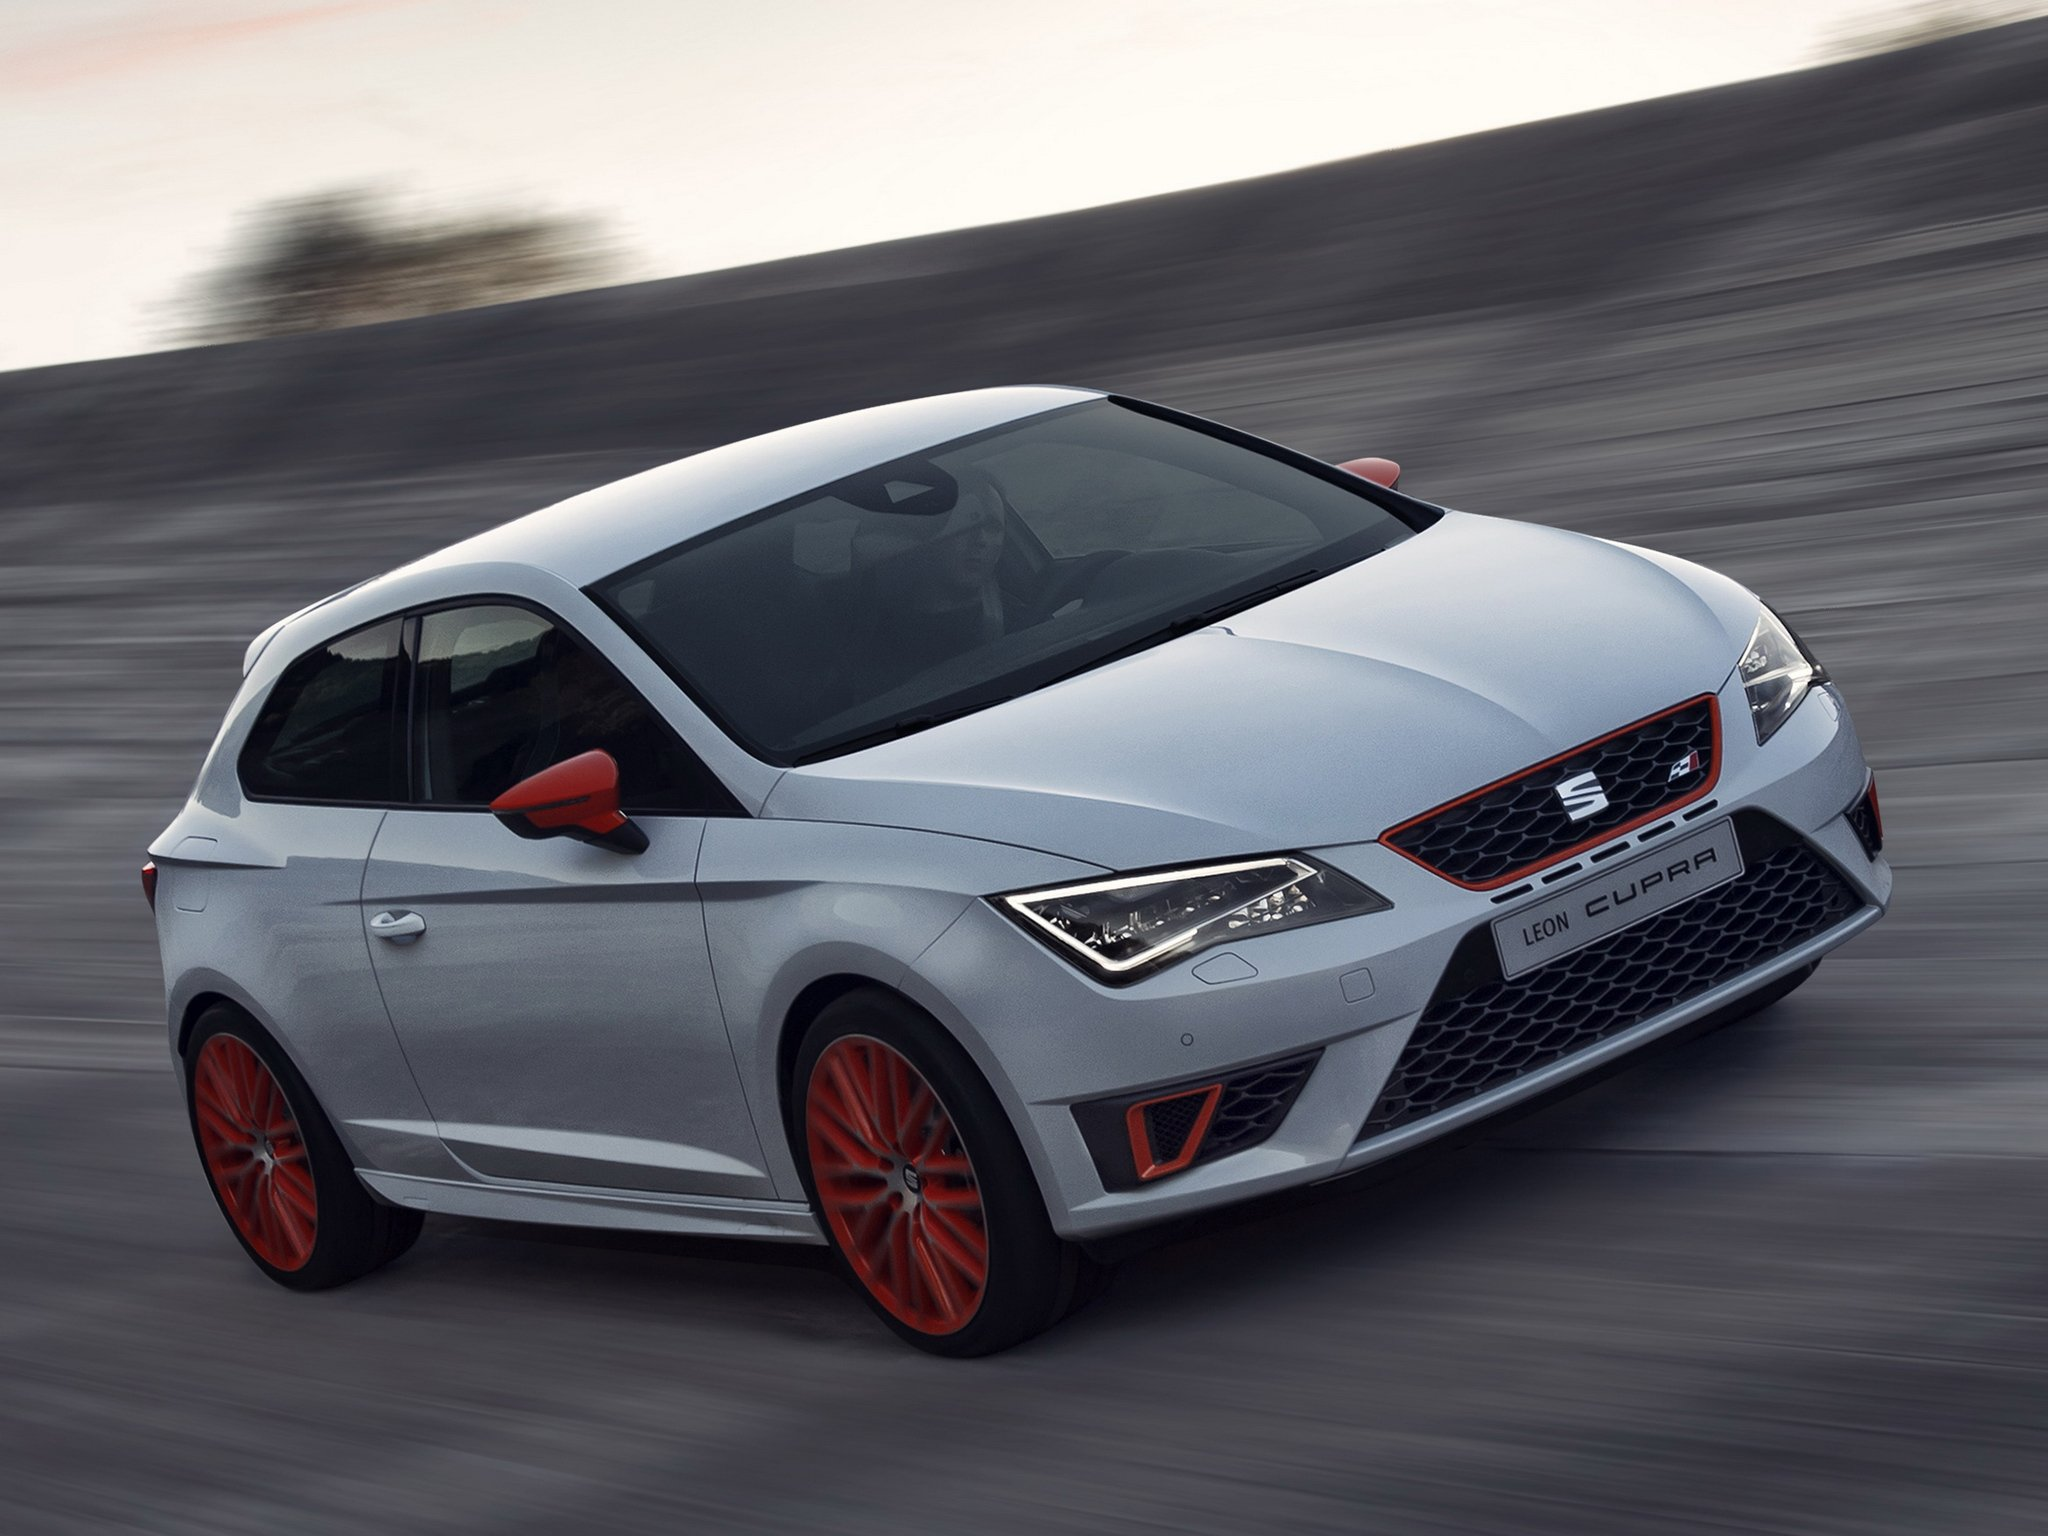 2014 seat leon s c cupra 280 x wallpaper 2048x1536 298590 wallpaperup. Black Bedroom Furniture Sets. Home Design Ideas